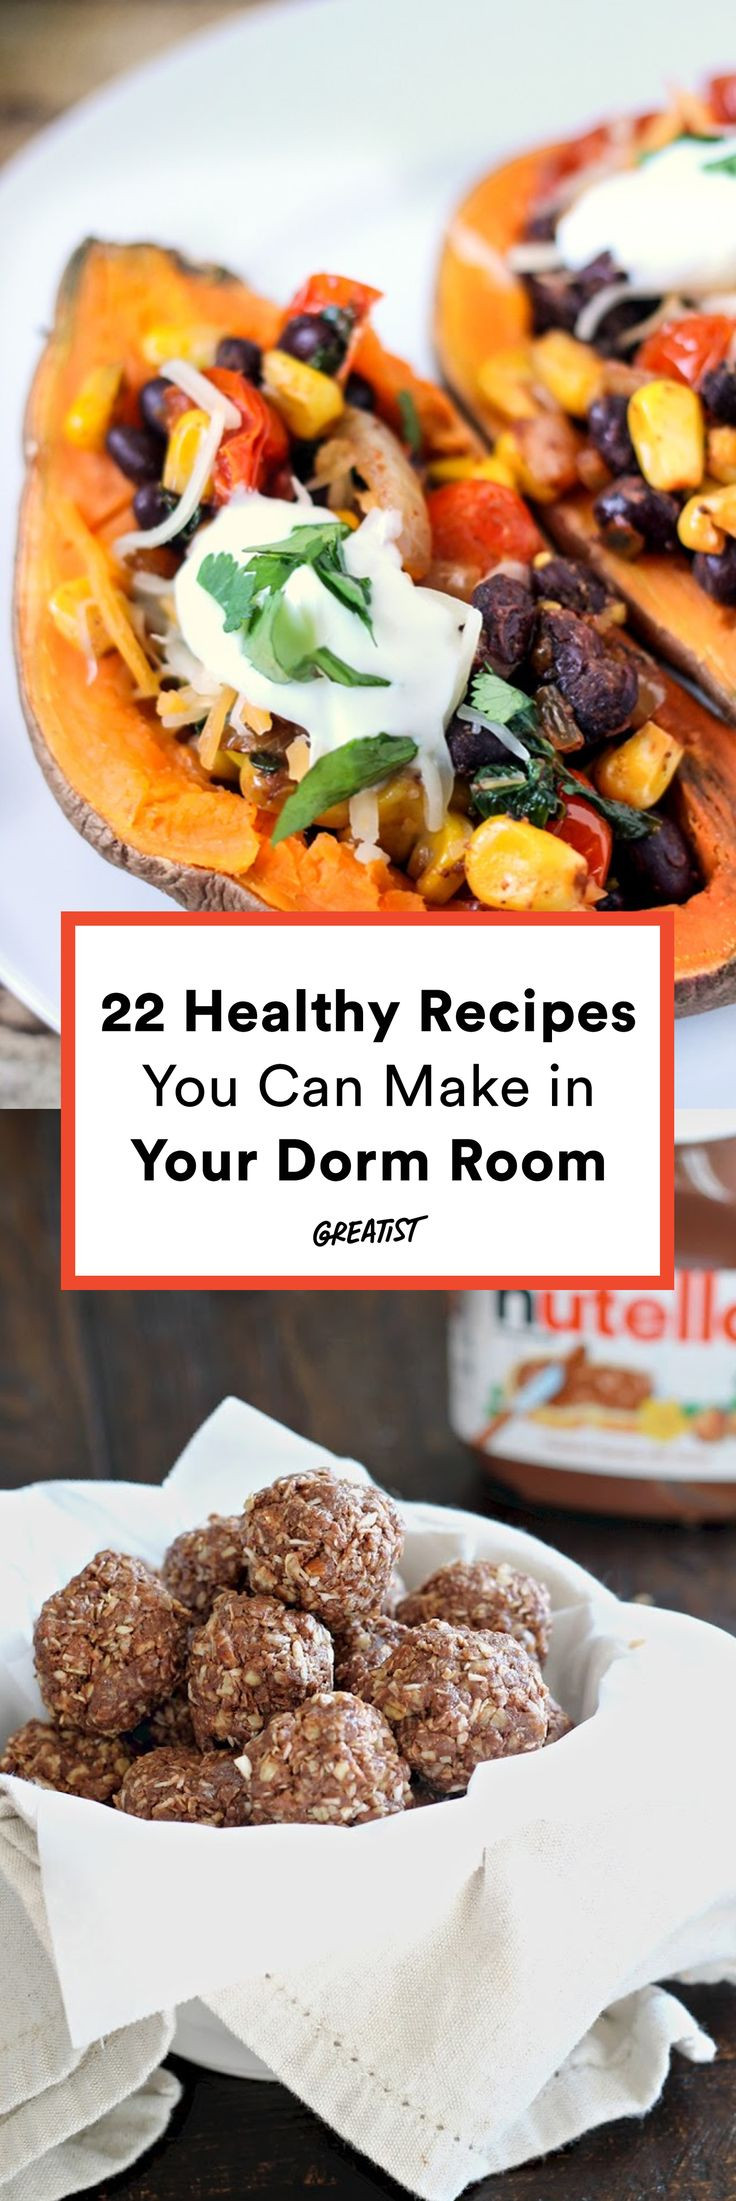 Healthy Snacks For College Dorm  22 Healthy College Recipes You Can Make in Your Dorm Room